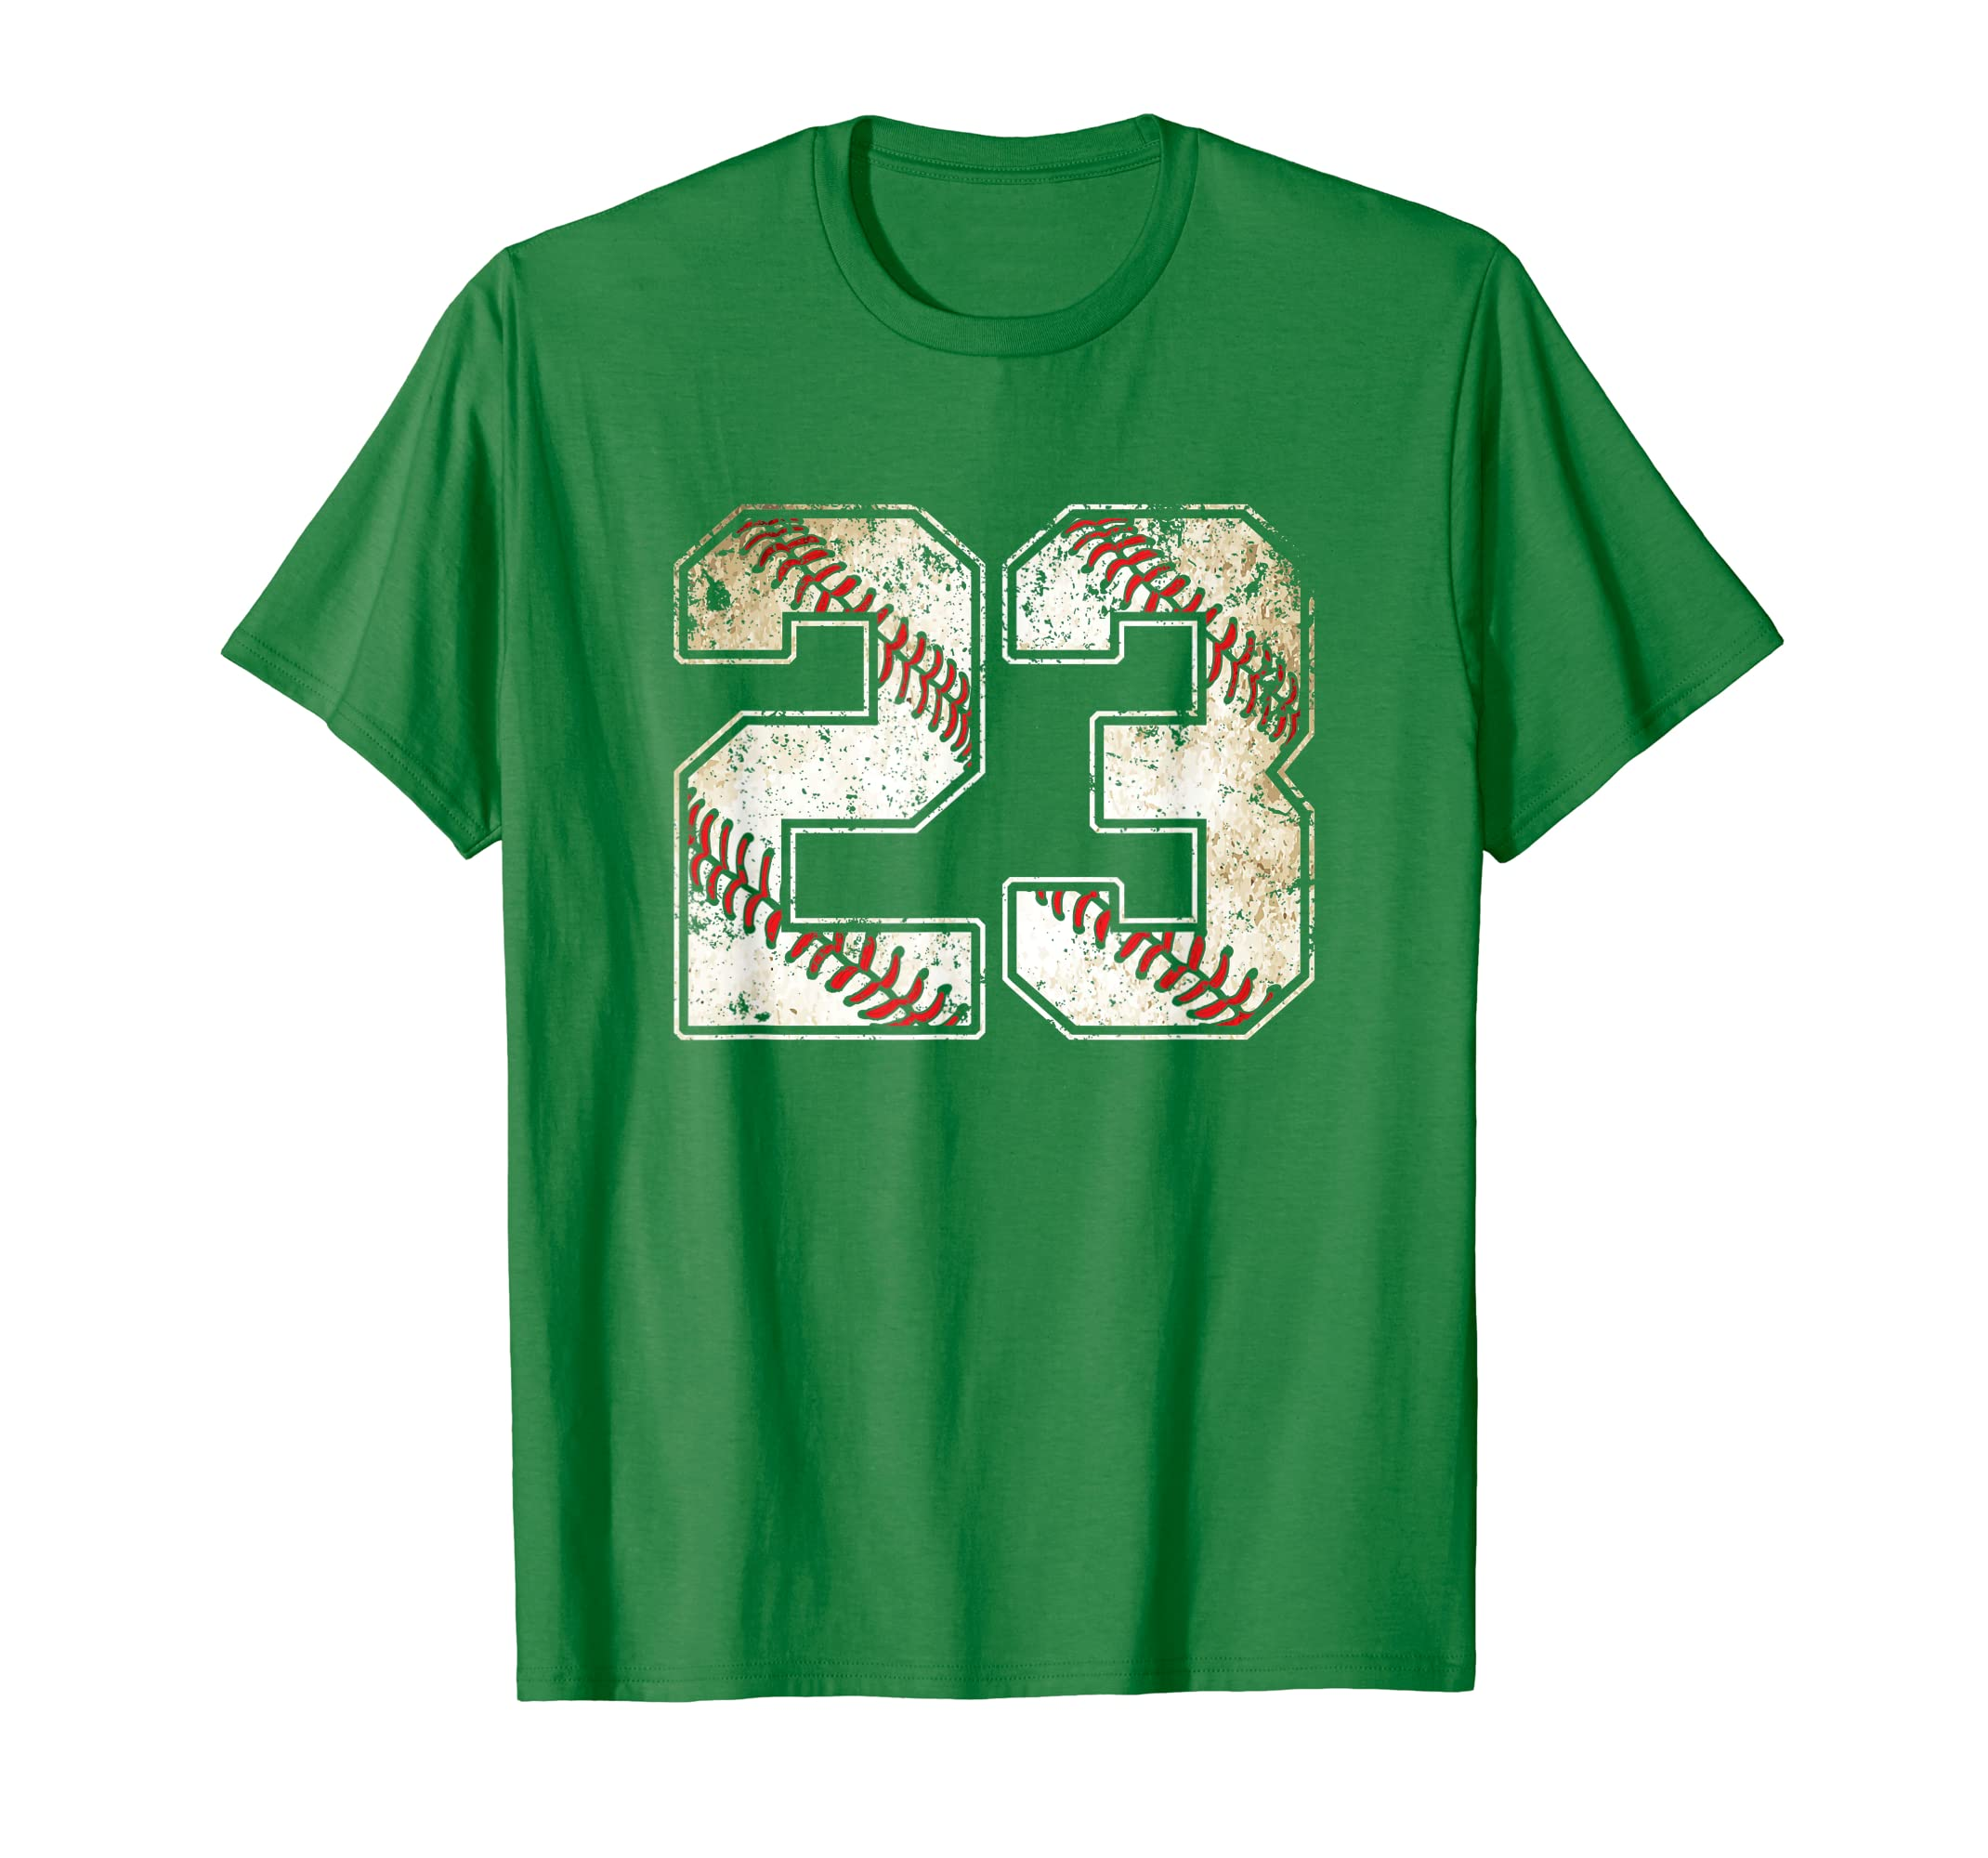 cf704f425 23 Baseball Jersey Number 23 Retro Vintage T-Shirt | AstraWork- Cool ...